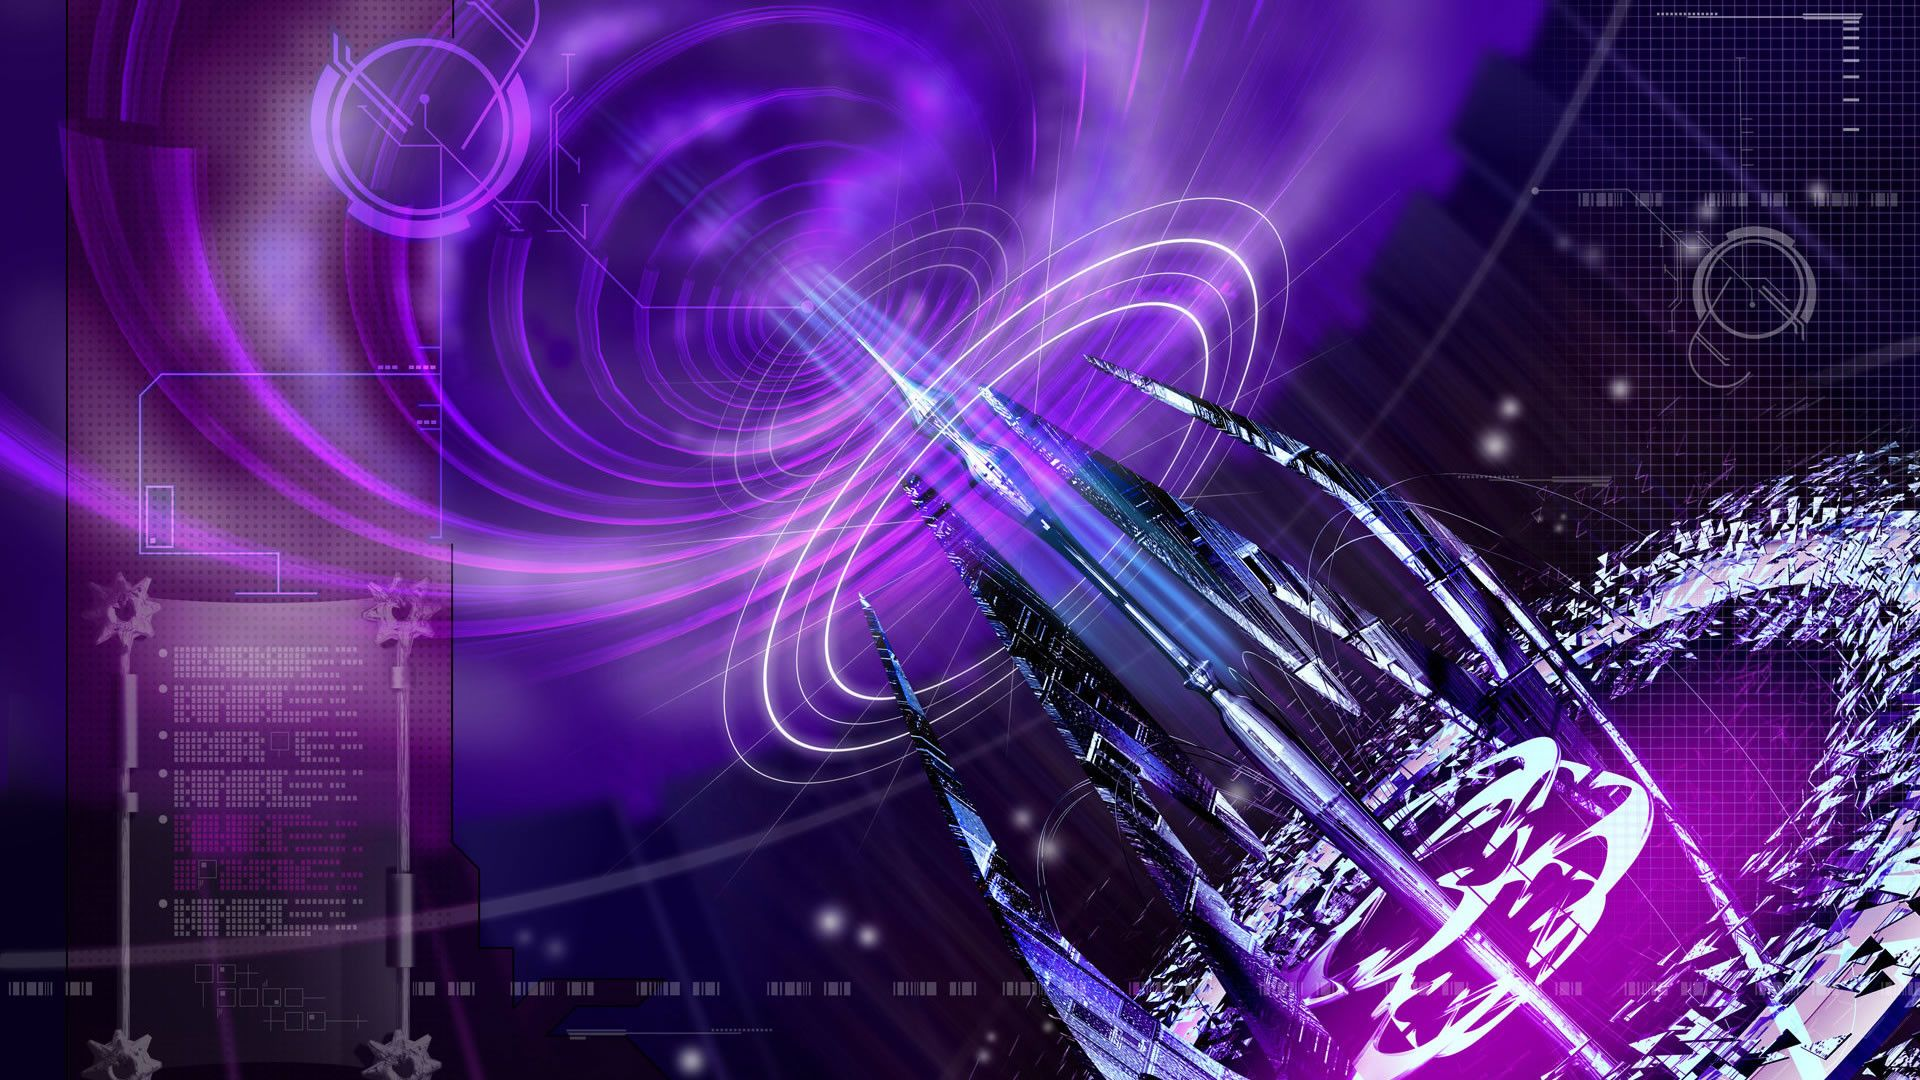 Purple Backgrounds Hd In 2020 Purple Abstract Abstract Wallpaper Purple Wallpaper